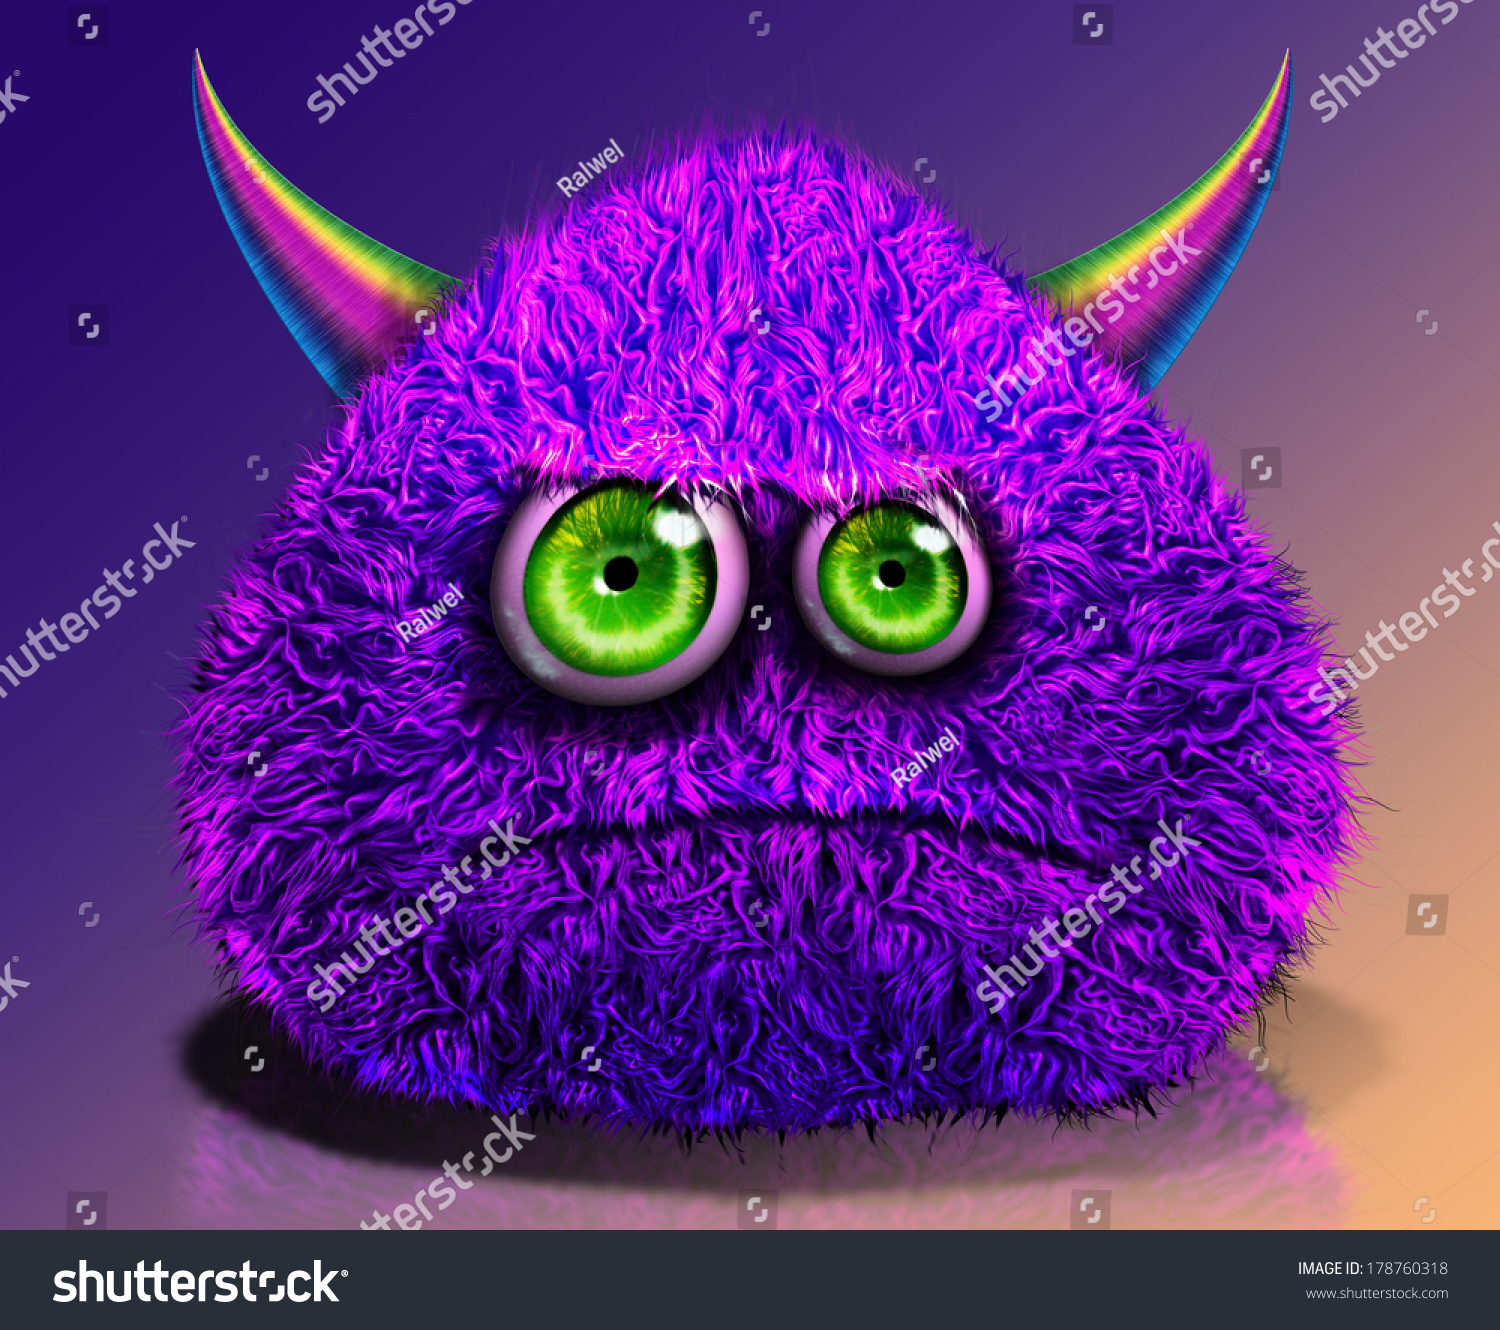 Belly Rumble Furry: Cartoon Furry Monster With Horns Stock Photo 178760318